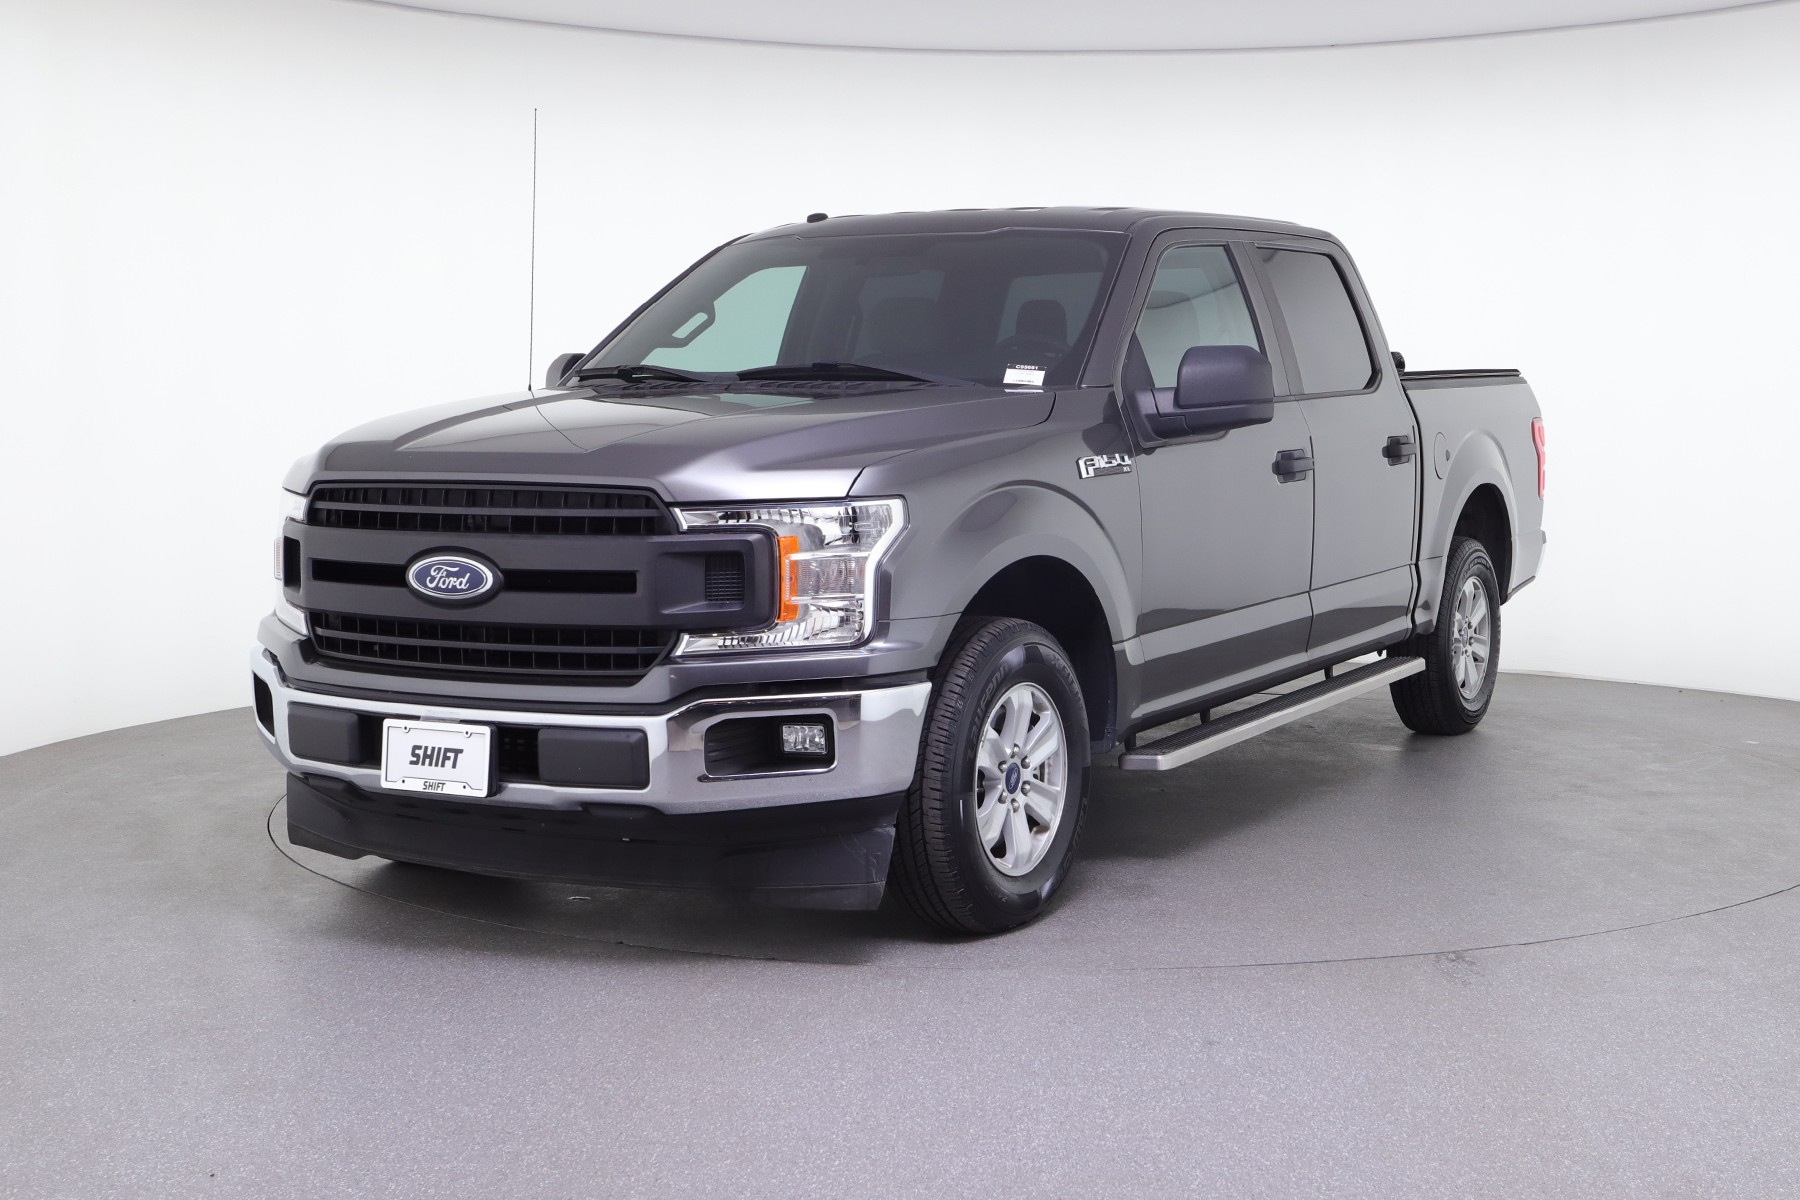 How Much Does a Ford F-150 Weigh?